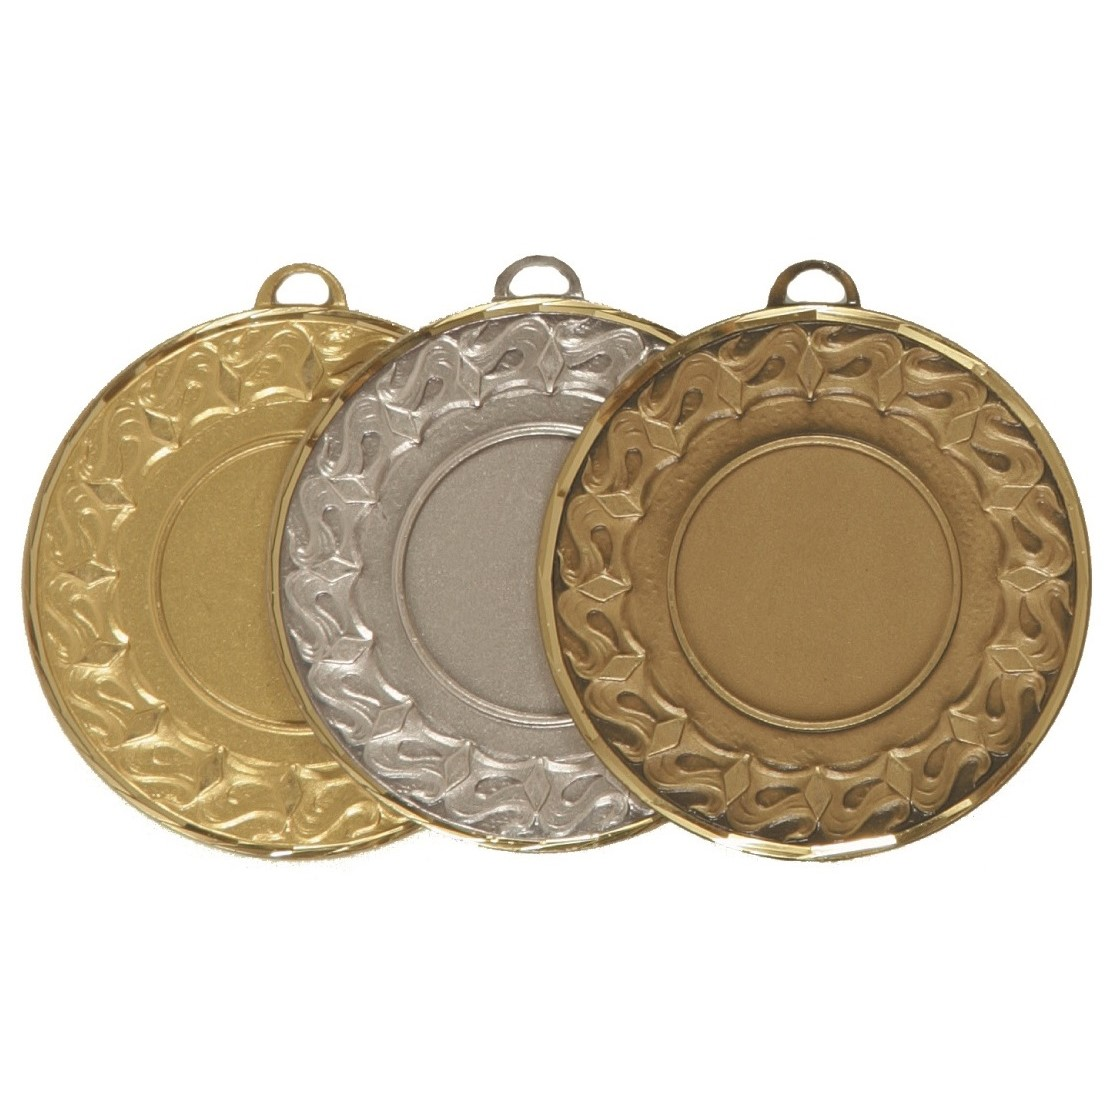 Faceted Waves Medal - 5615F